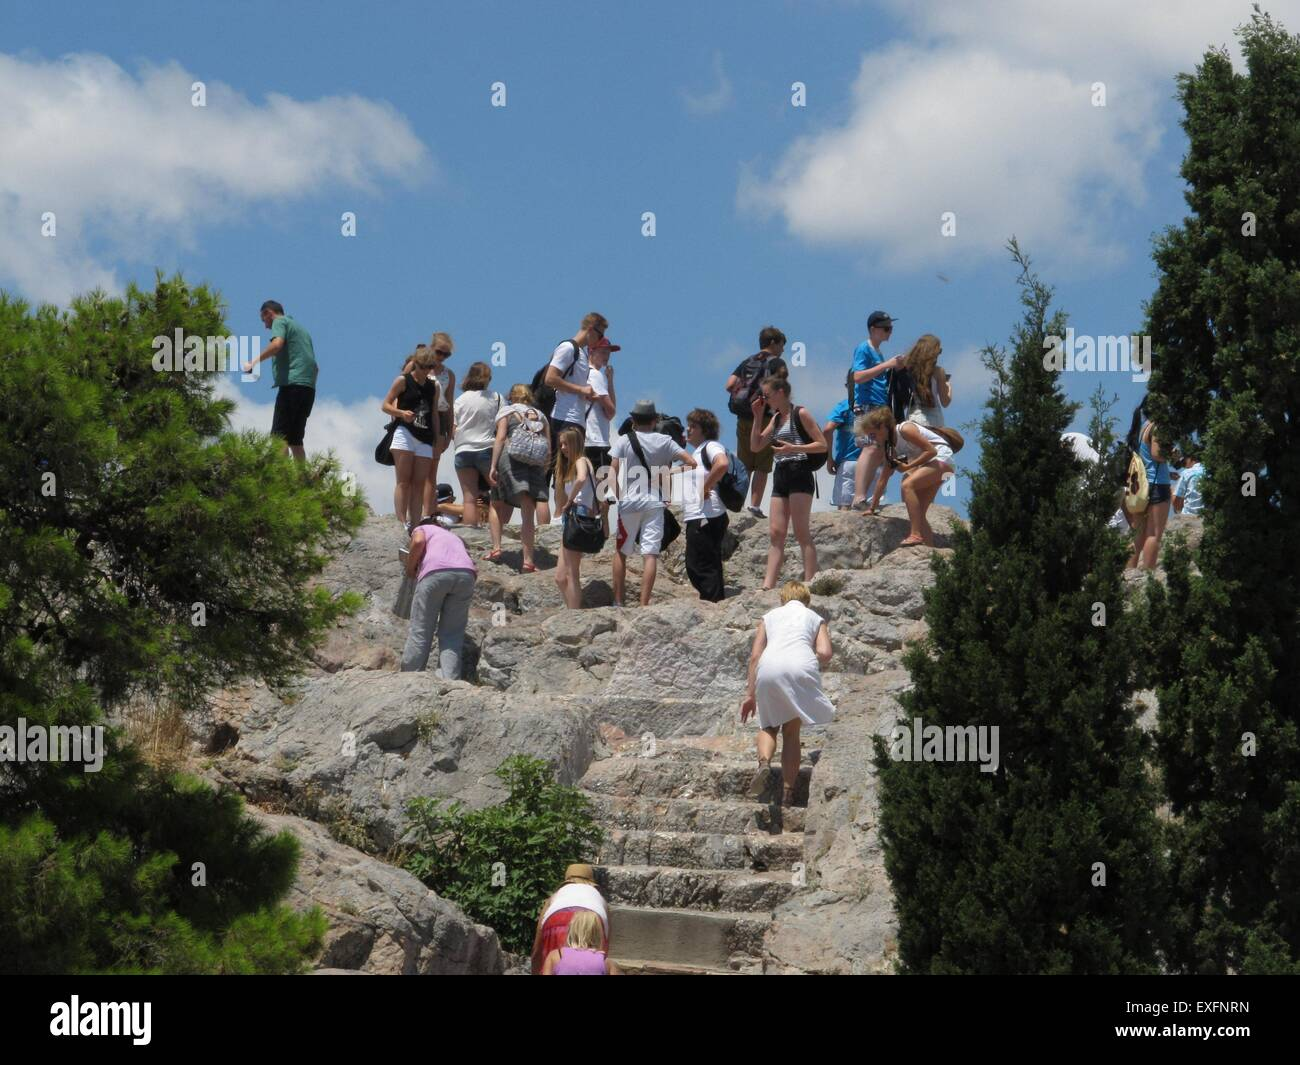 bafba45e1db Tourist Industry is considered a big asset of the Greek economy even in the  middle of the International Economic Crisis. Tour Operators announcing  increase ...